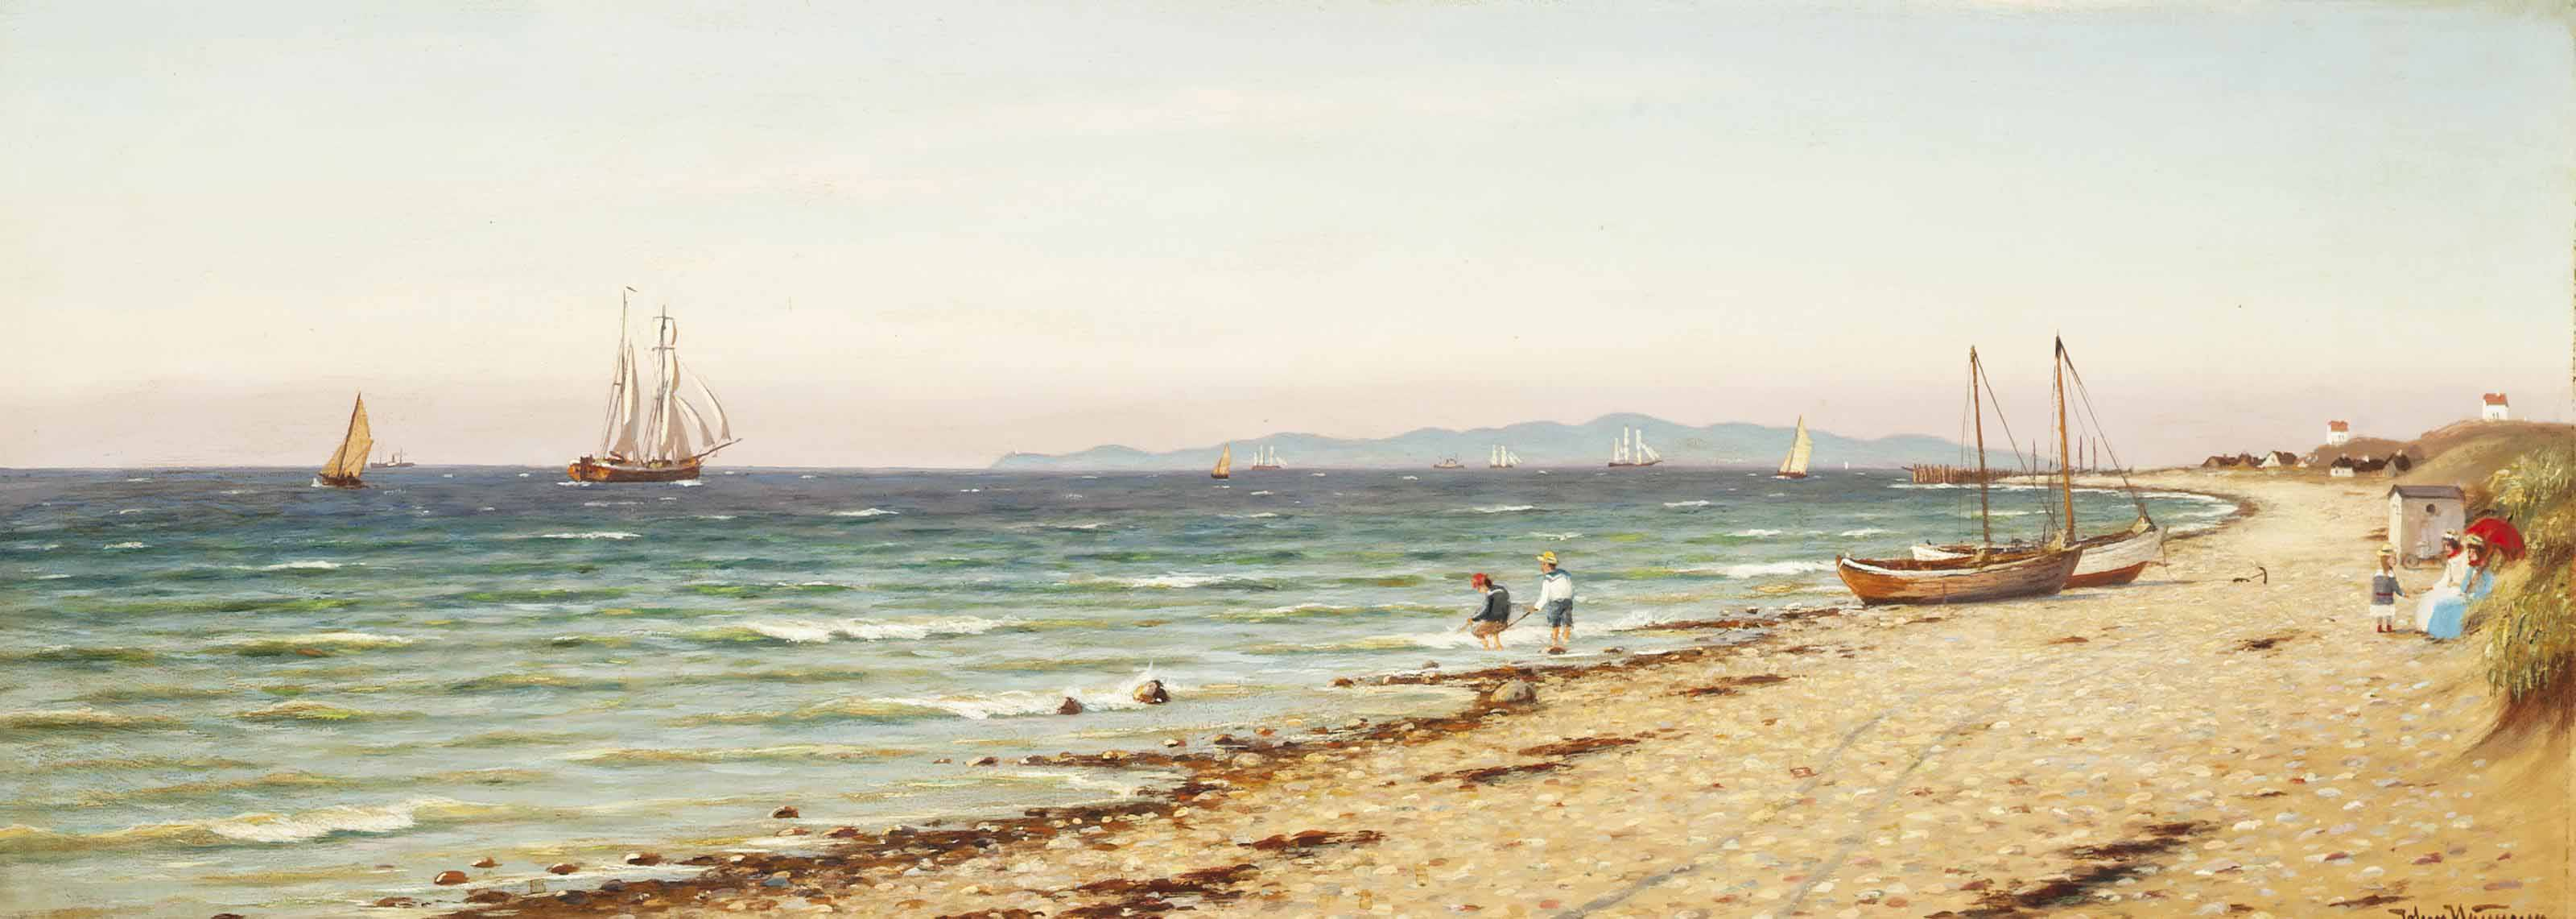 Children playing on the shore